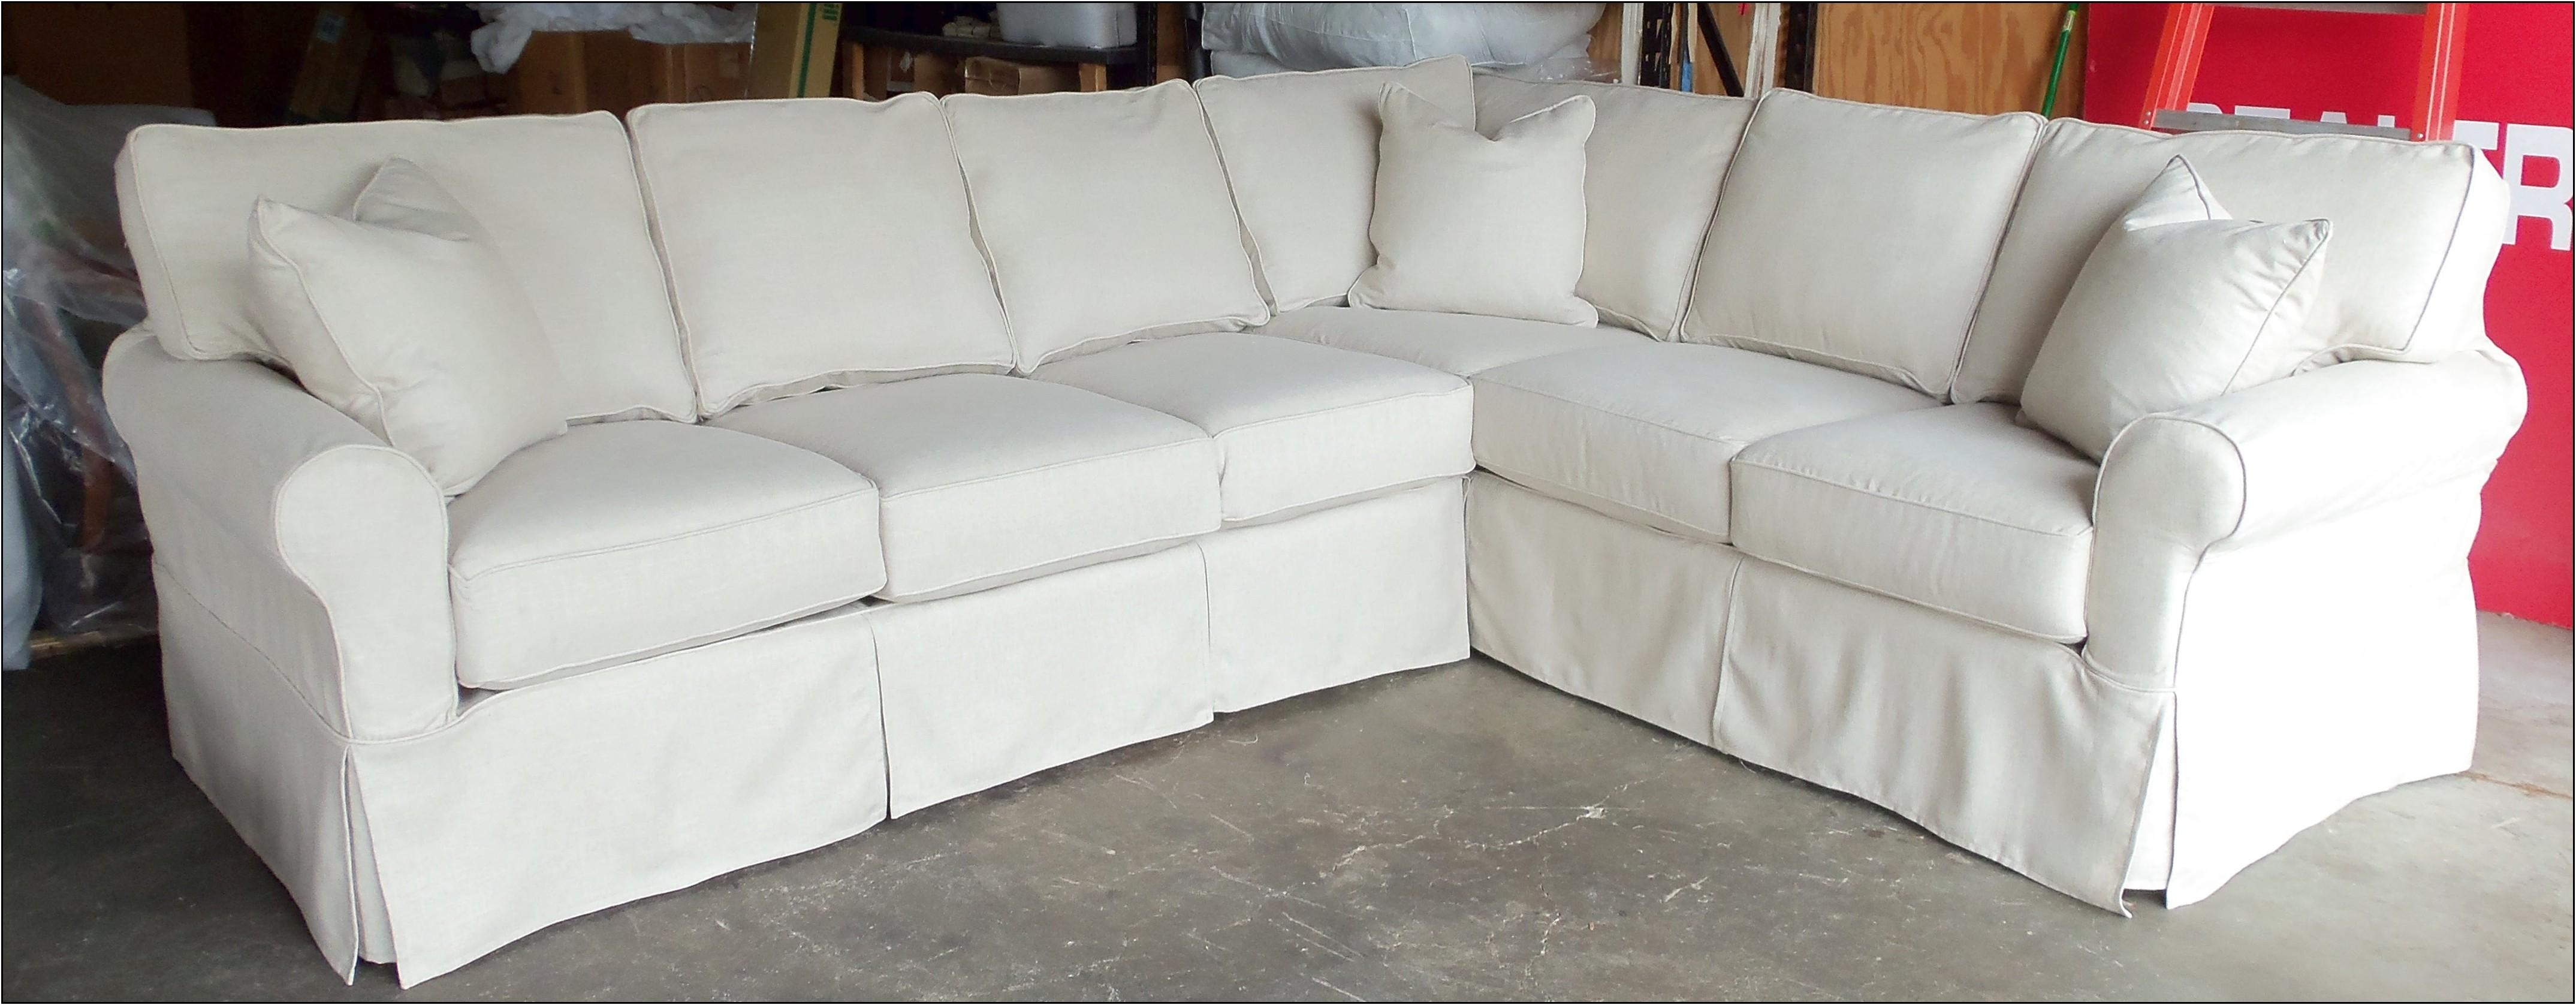 Living Room Chair And Ottoman Covers – Hypnofitmaui Pertaining To Slipcovers For Sleeper Sofas (View 11 of 20)